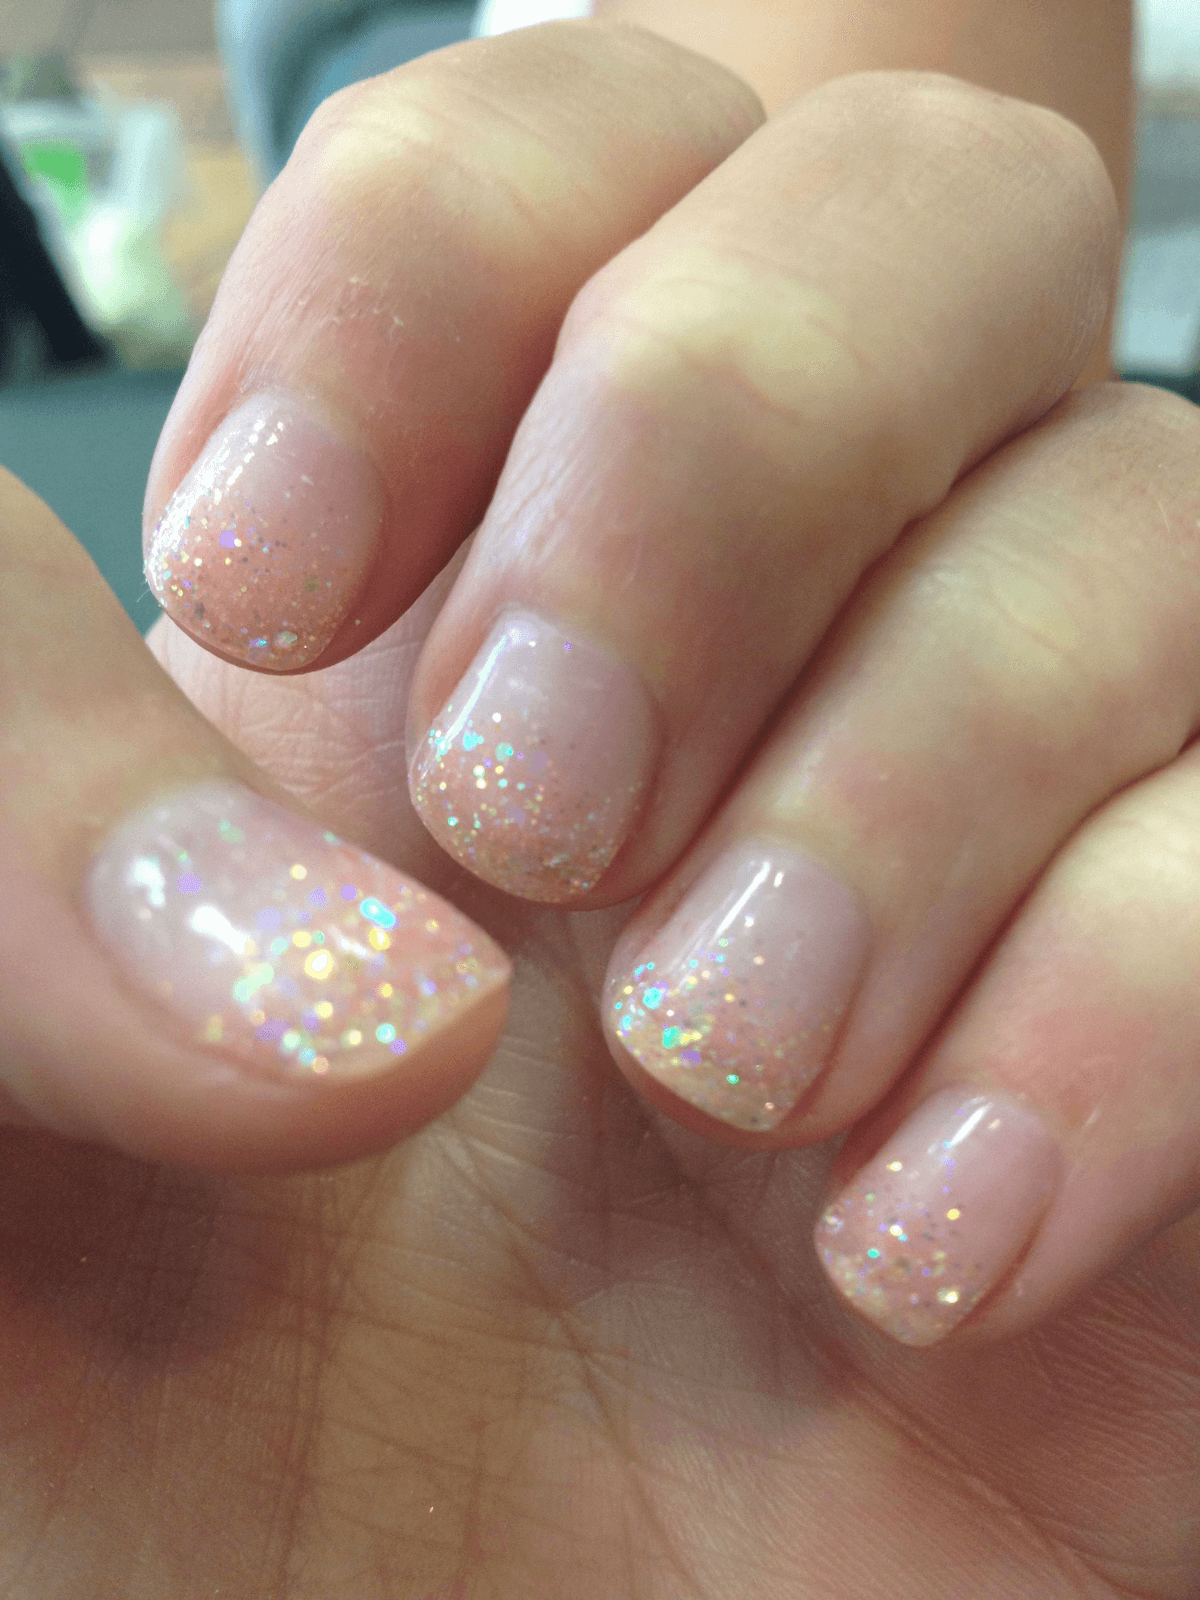 speckled-glitter nail design